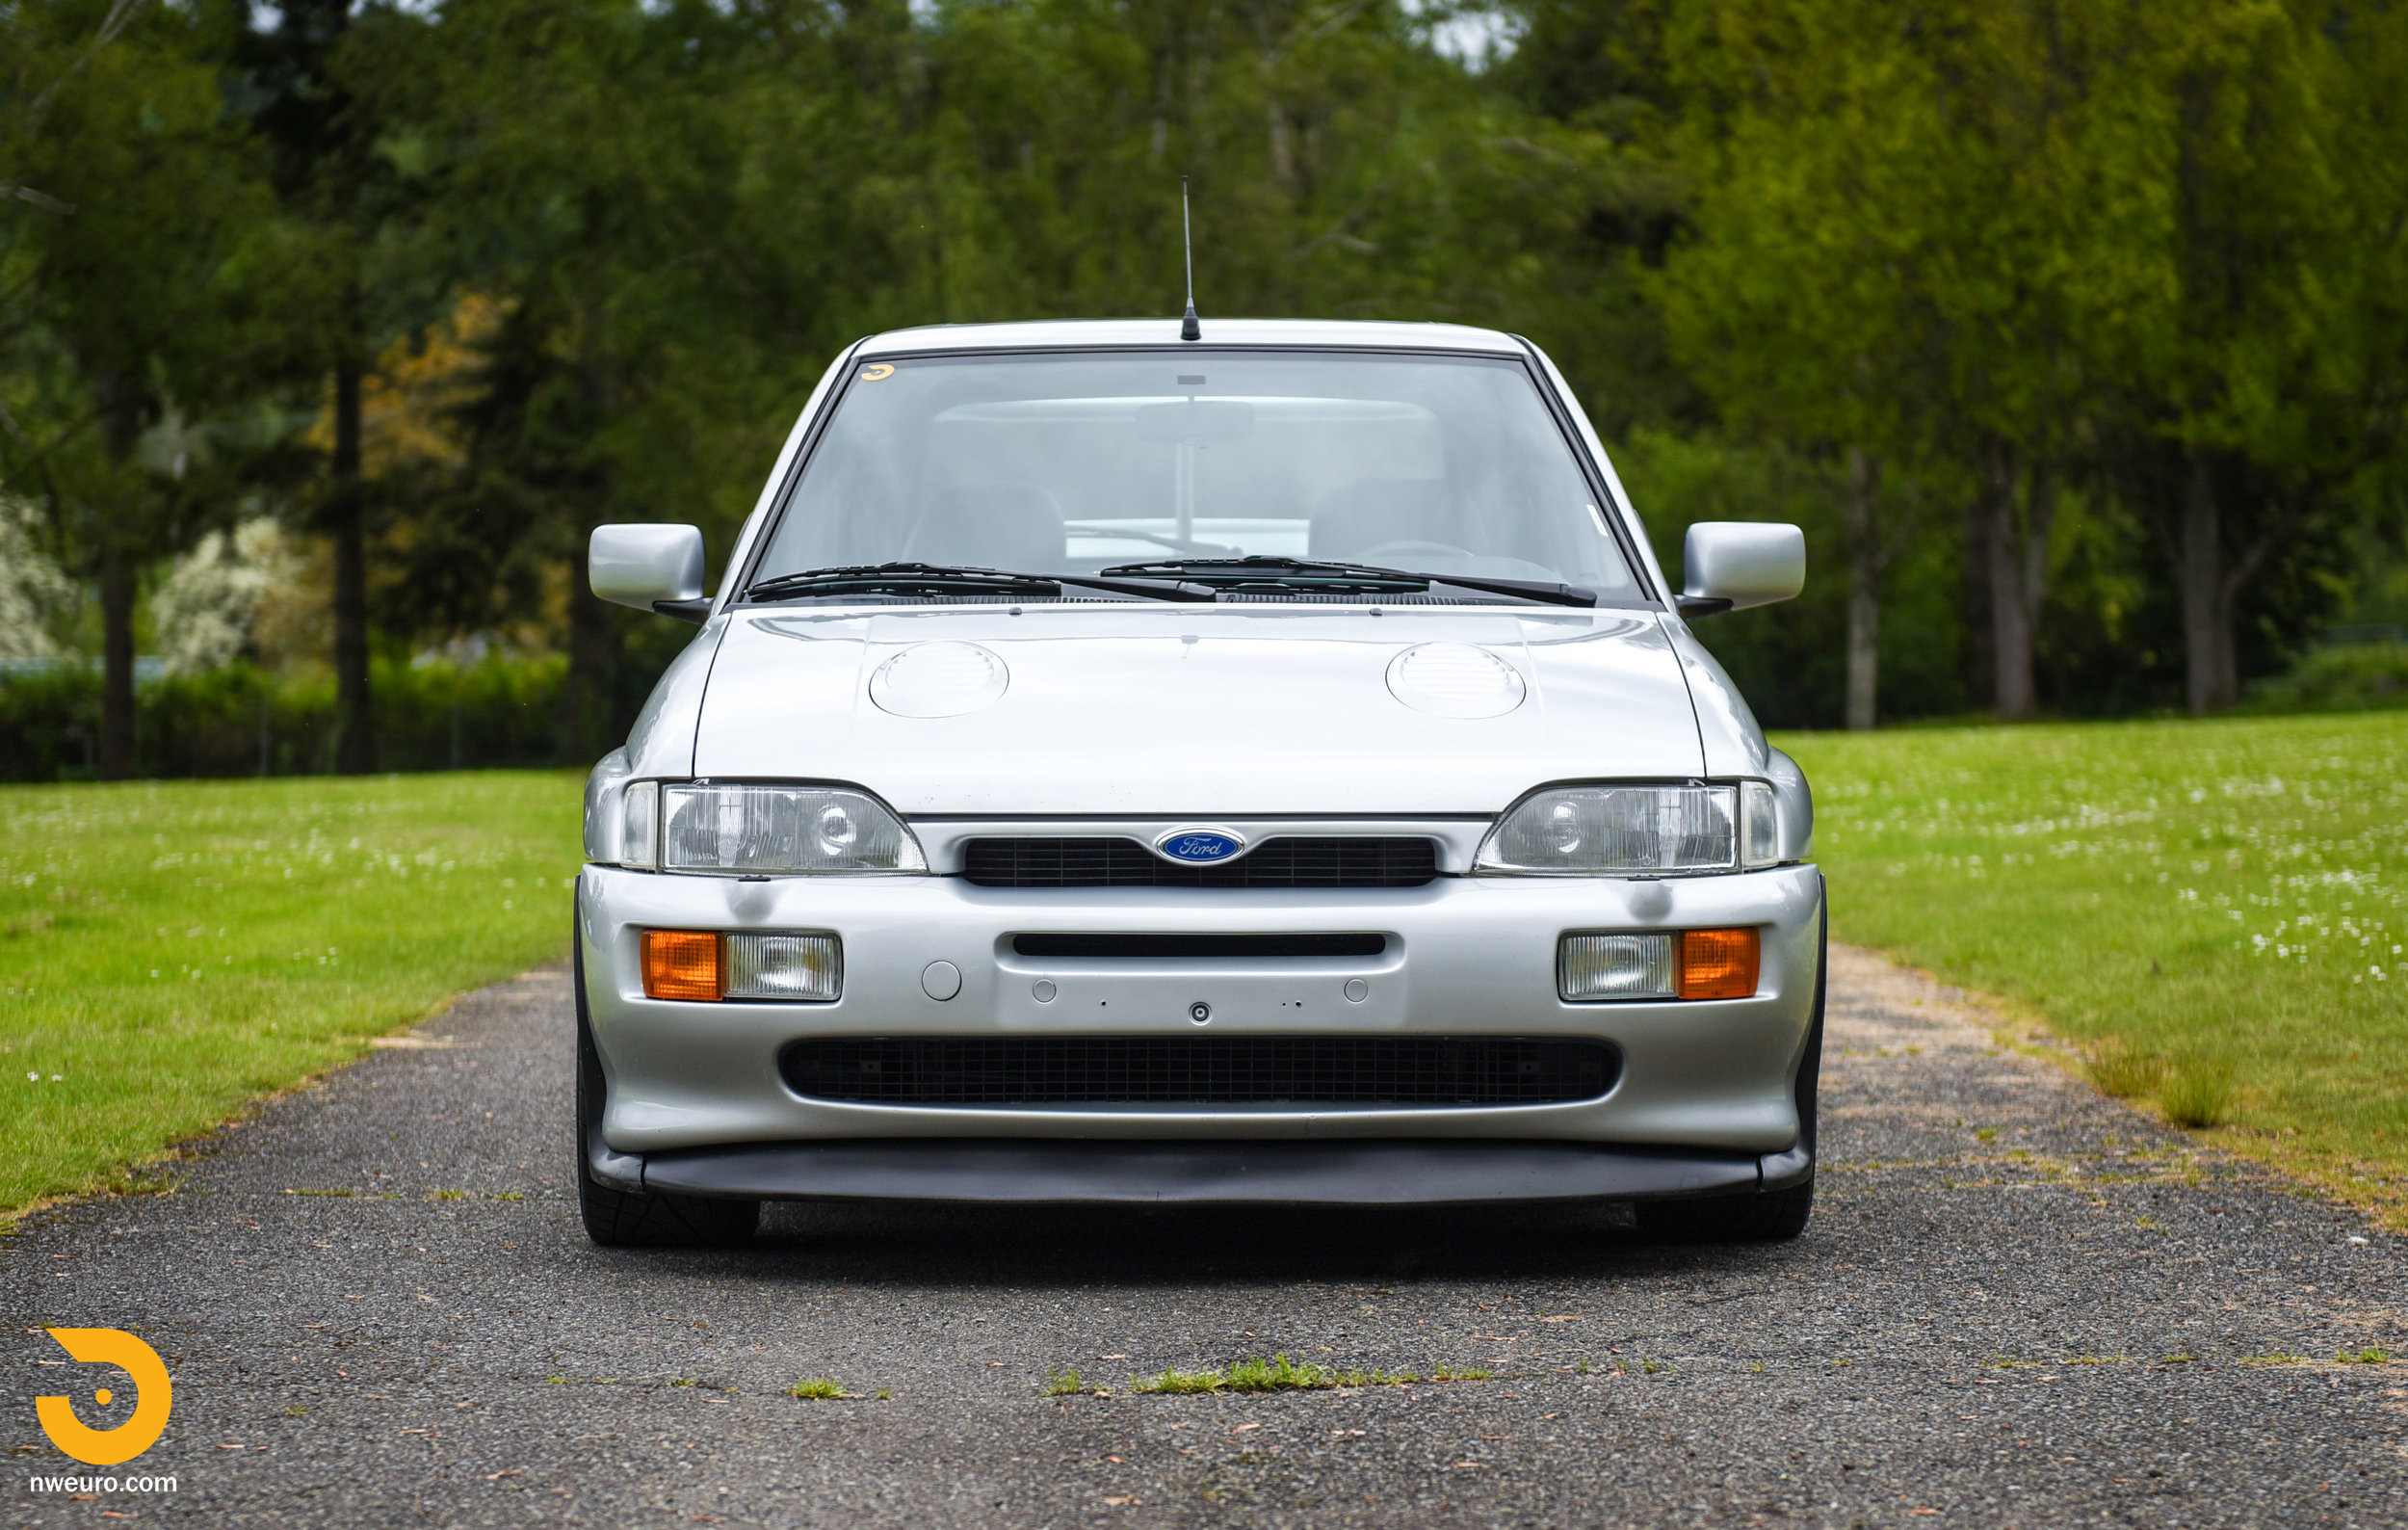 1995 Ford Escort Cosworth RS Silver-10.jpg